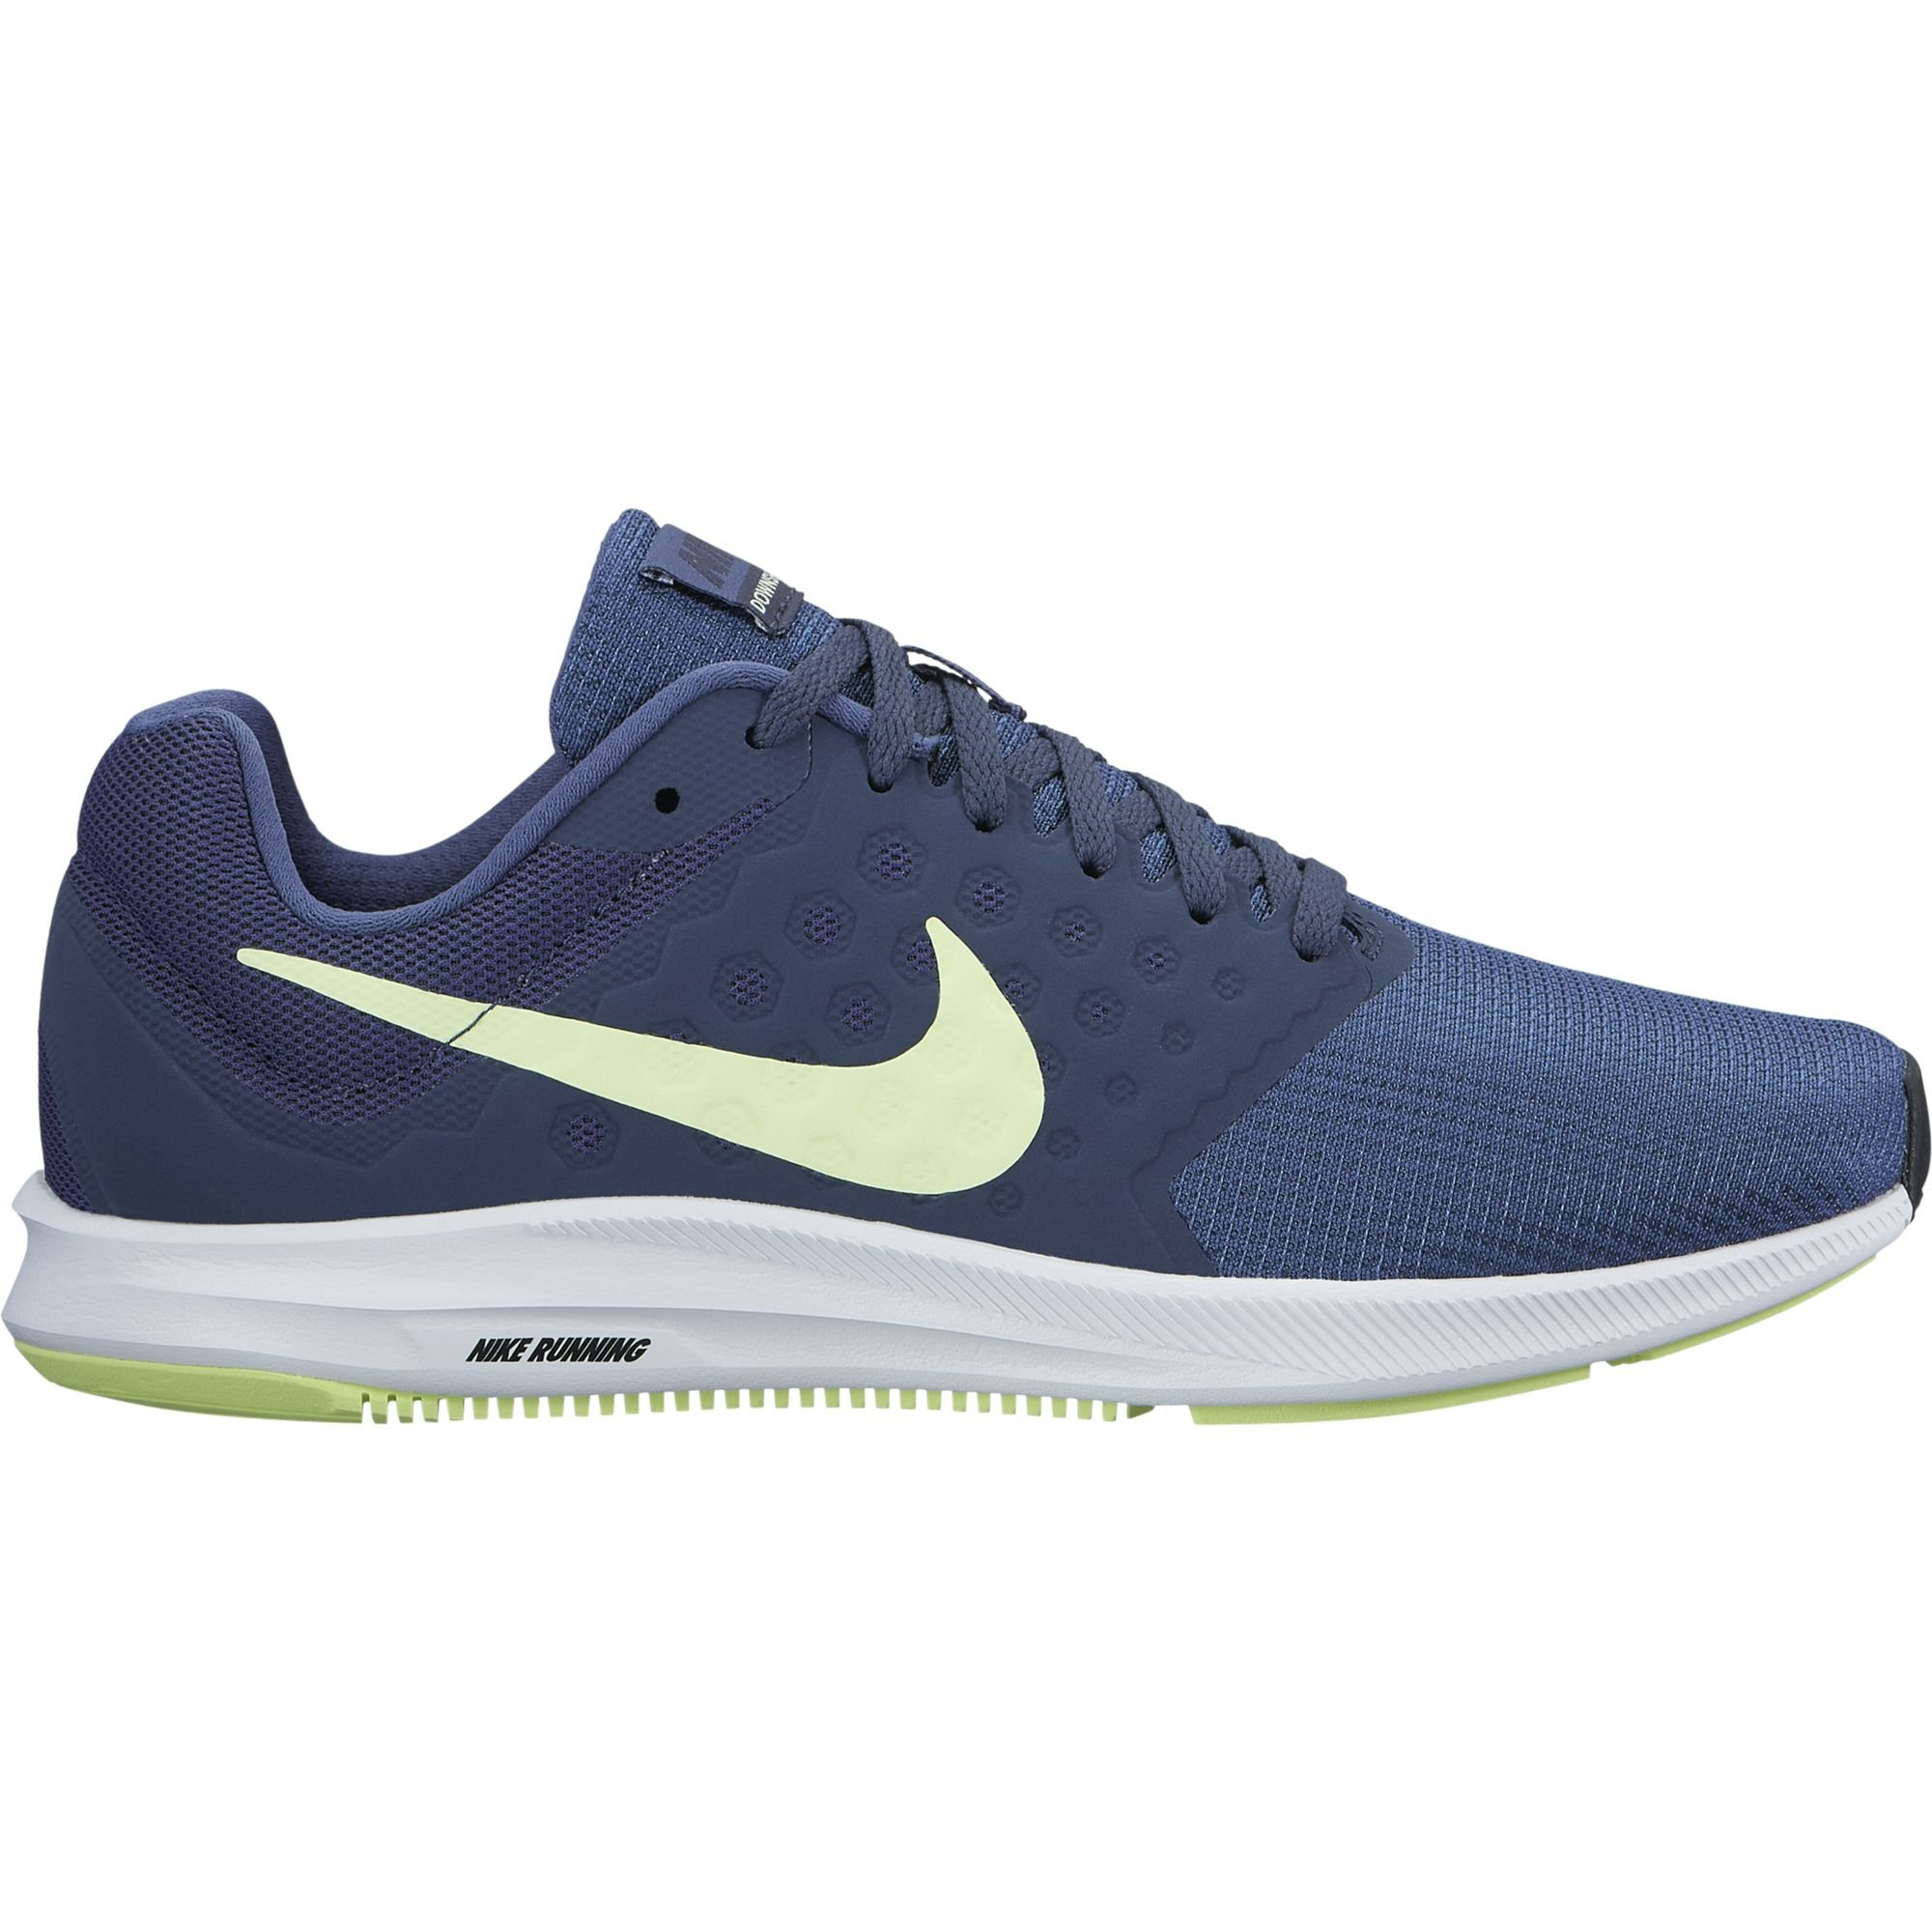 864a4cc8db0fb Galleon - NIKE Women s Downshifter 7 Running Shoe Blue Recall Barely  Volt Thunder Blue Size 7.5 M US